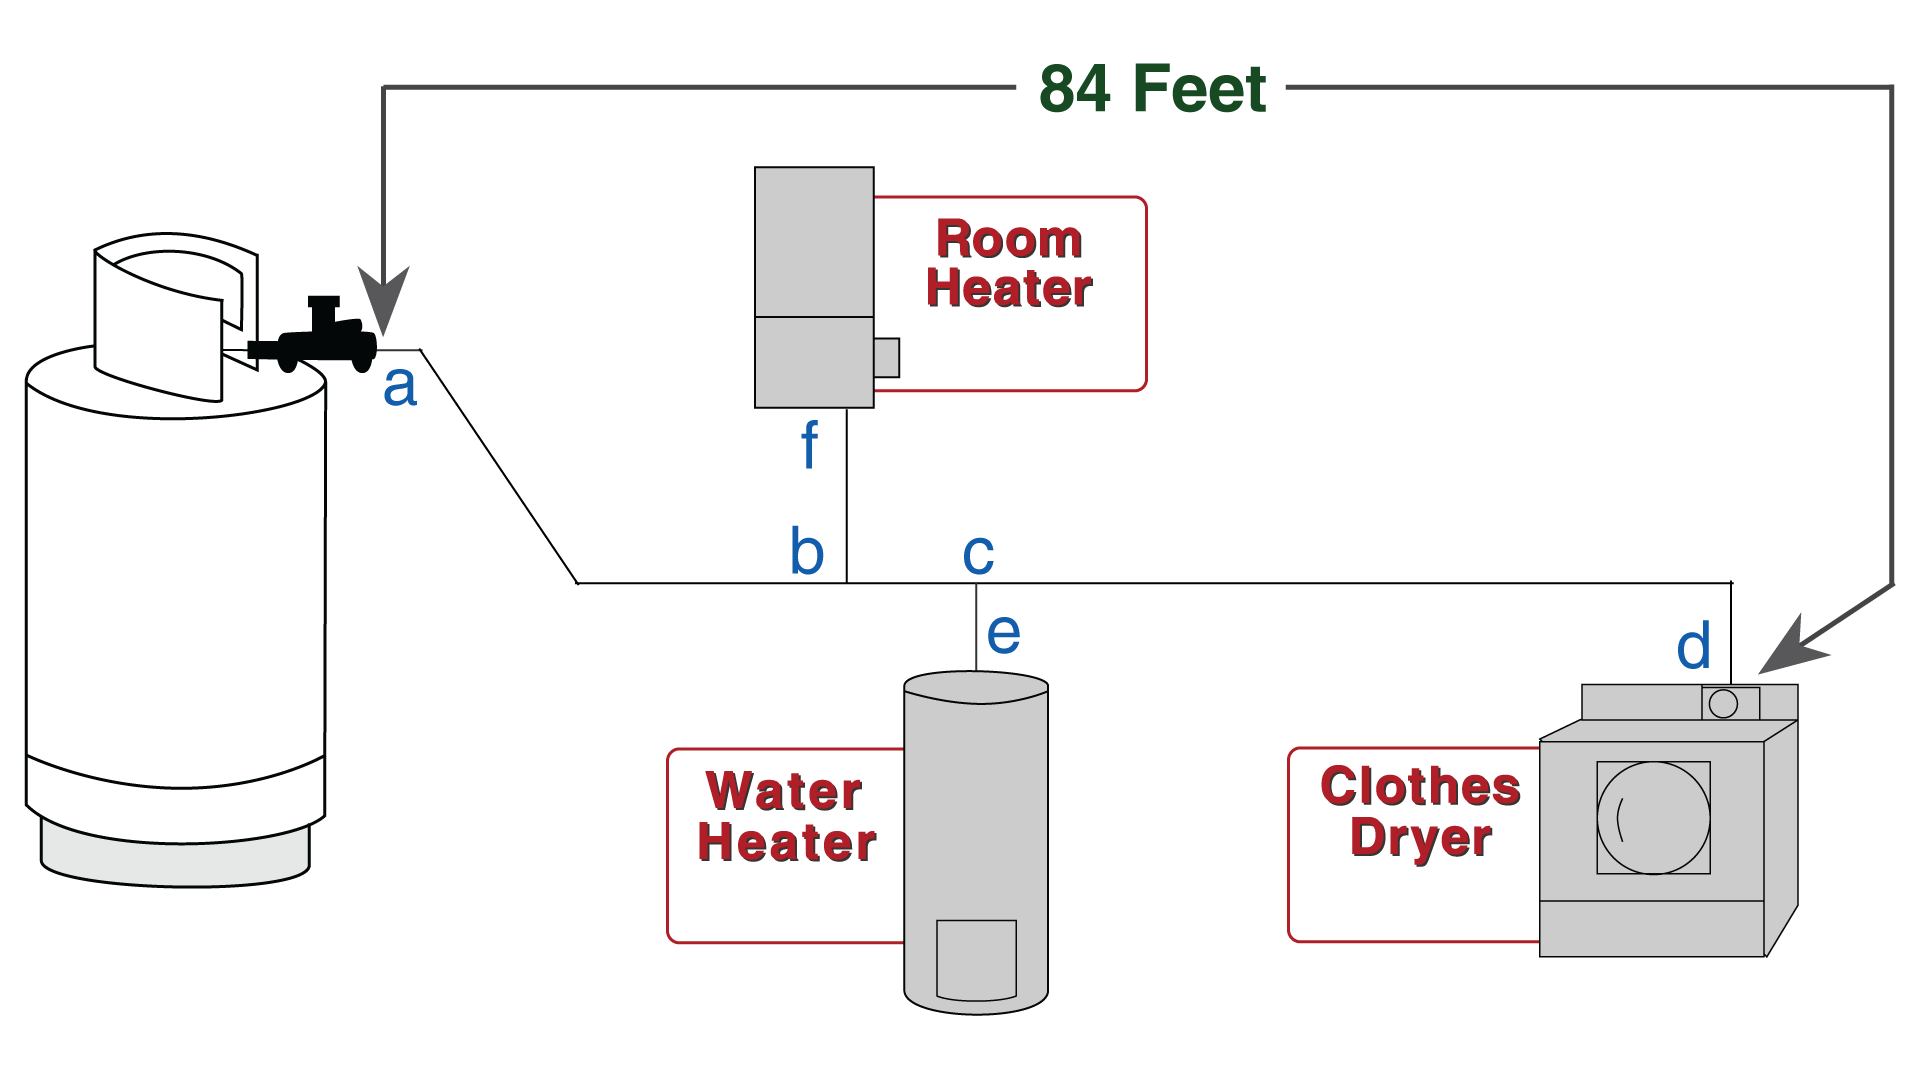 Sketch showing that it's 84 feet from regulator to the building.